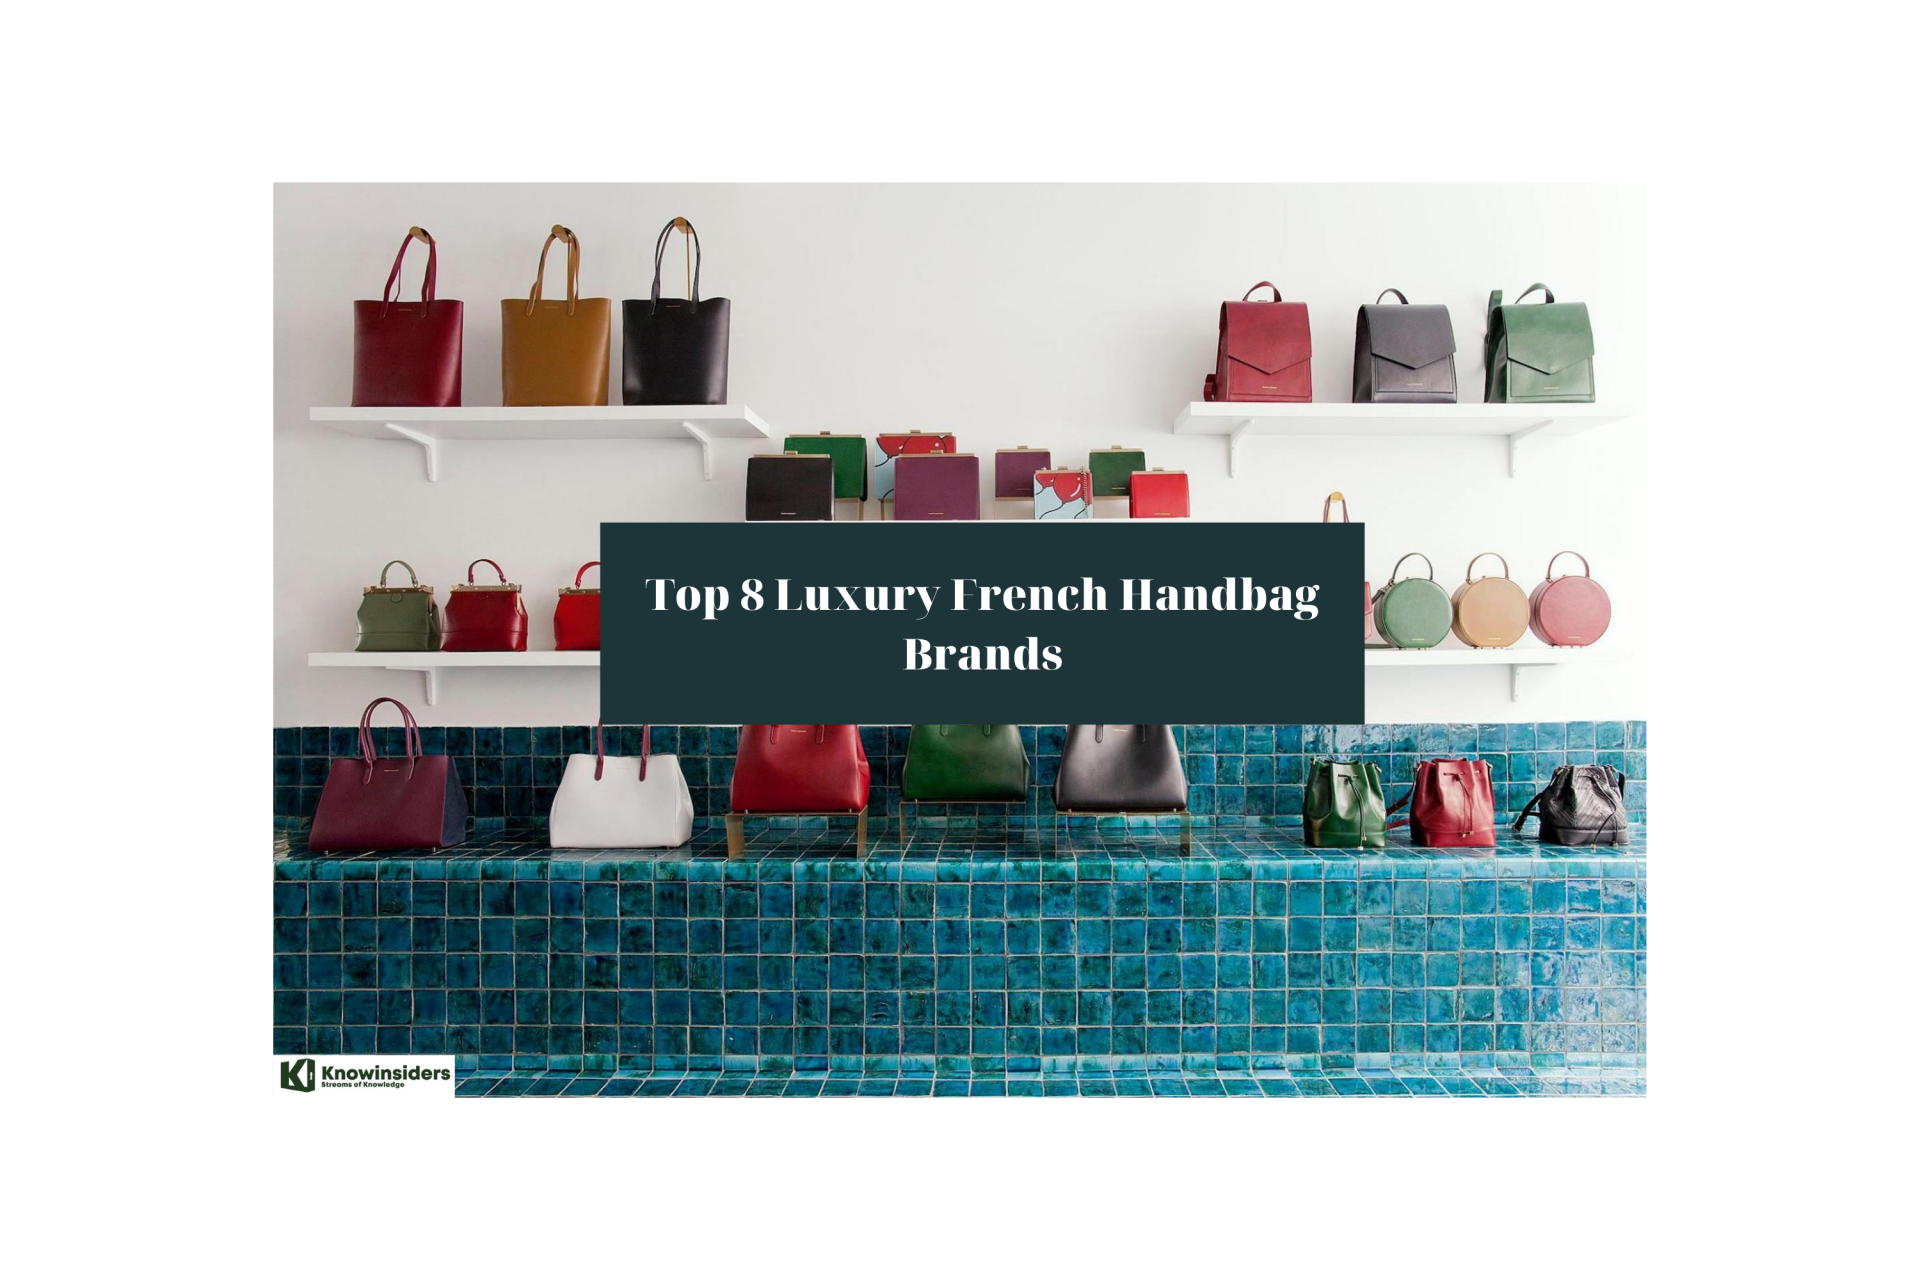 Top 8 Luxury French Handbag Brands